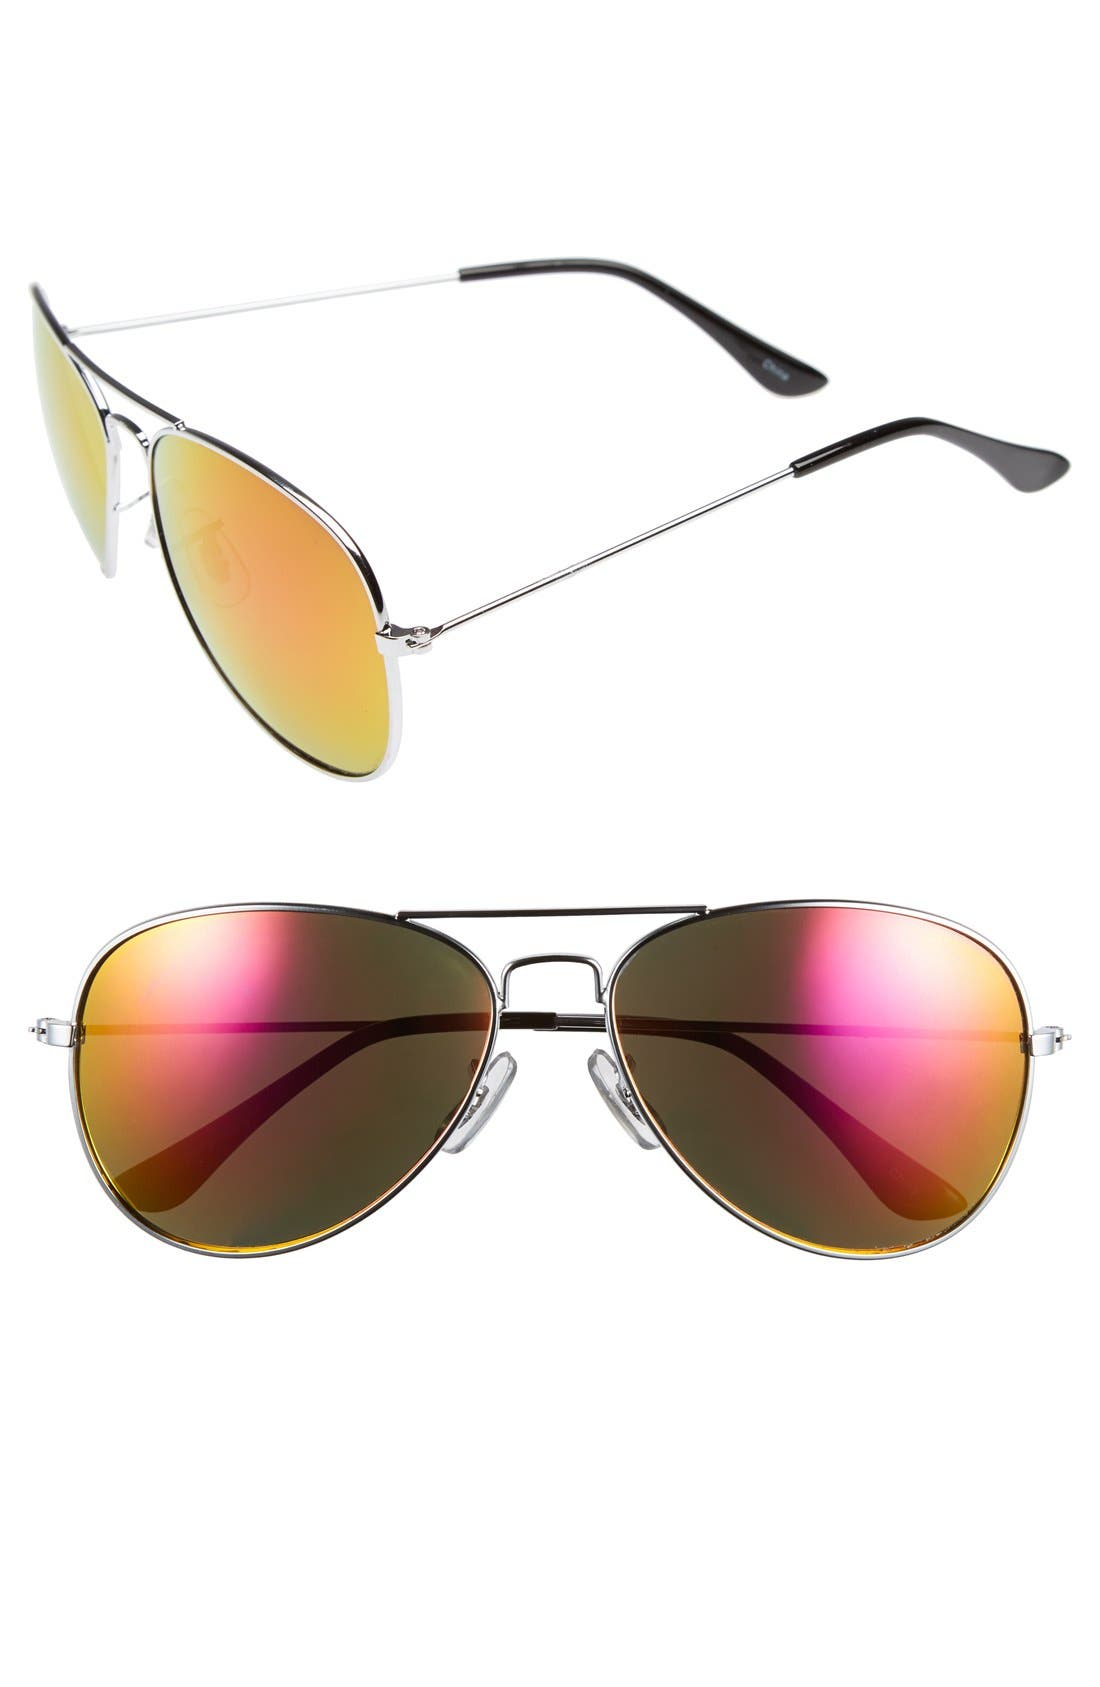 Alternate Image 1 Selected - Icon Eyewear 55mm Mirrored Aviator Sunglasses